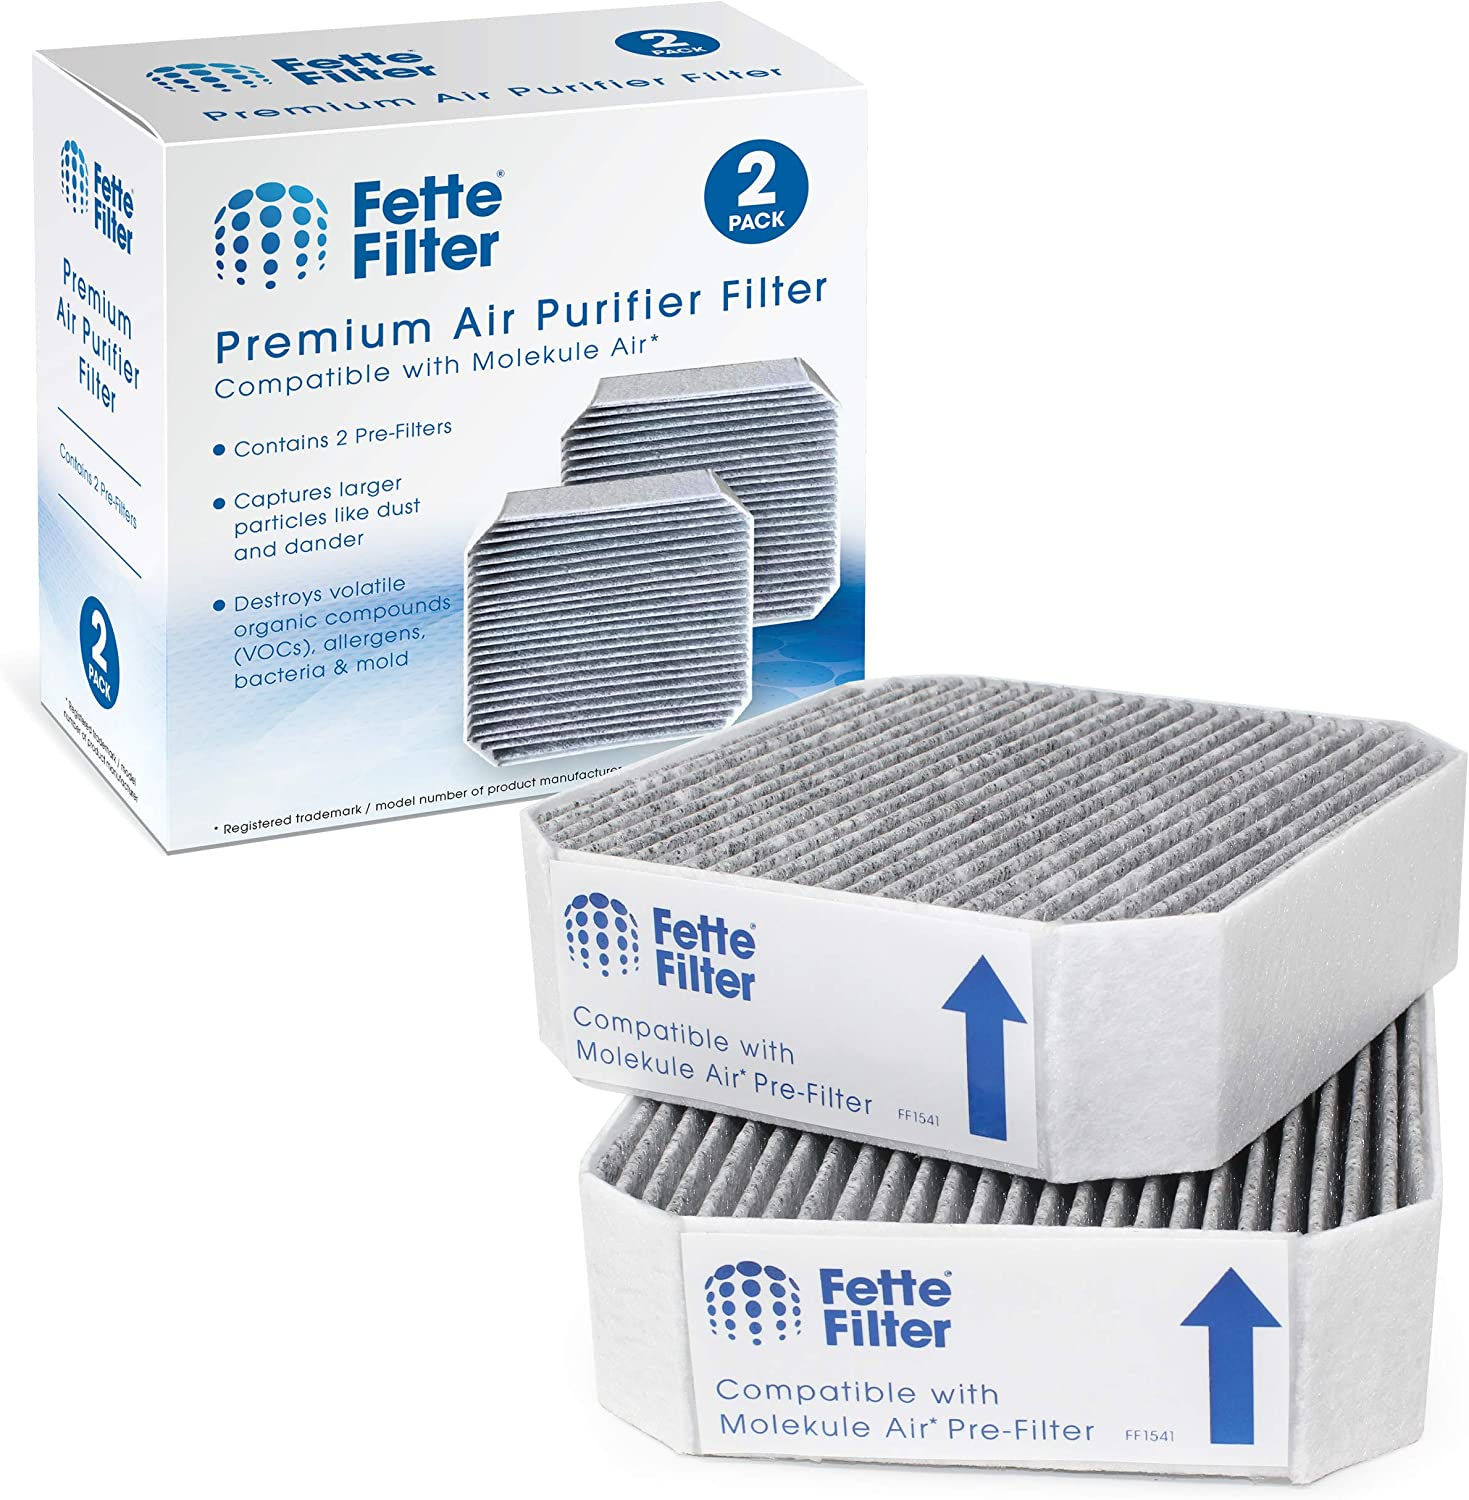 Fette Filter - 2-Pack Premium Replacement Carbon HEPA Pre-Filters Compatible with Molekule Air-PRE Filter (Not Mini) PECO Air Purifiers